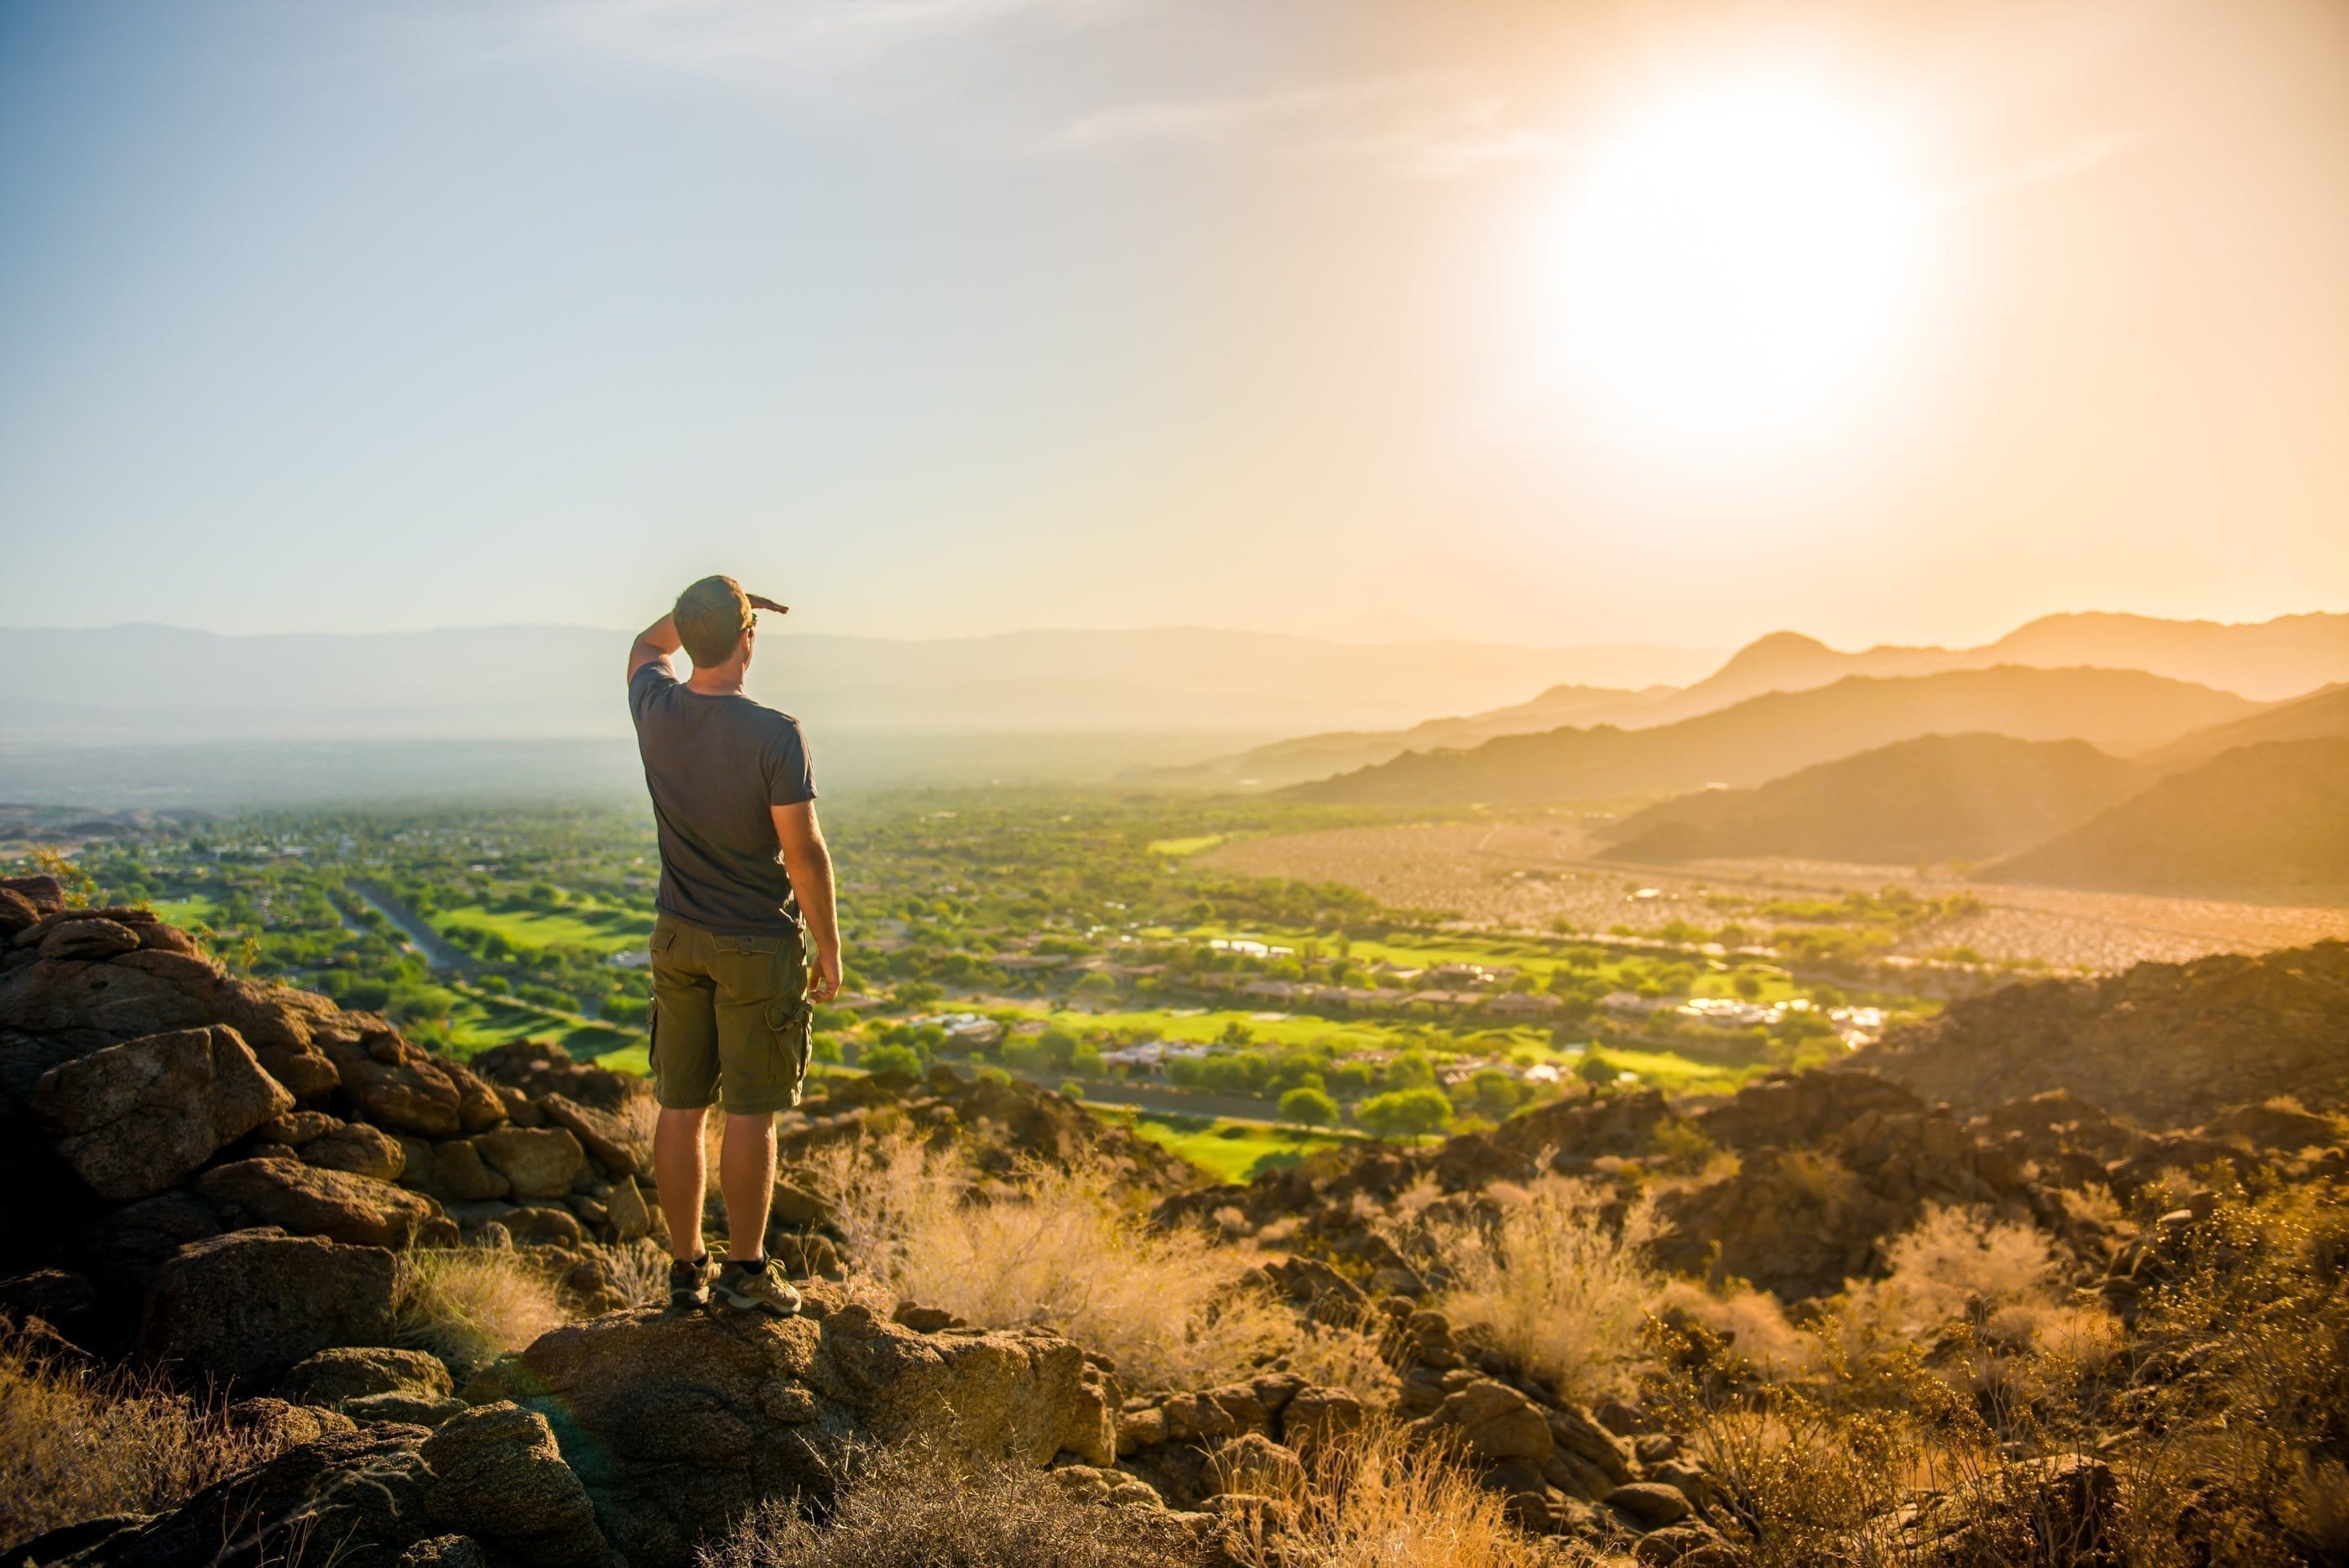 Get Your Adventure On in Greater Palm Springs